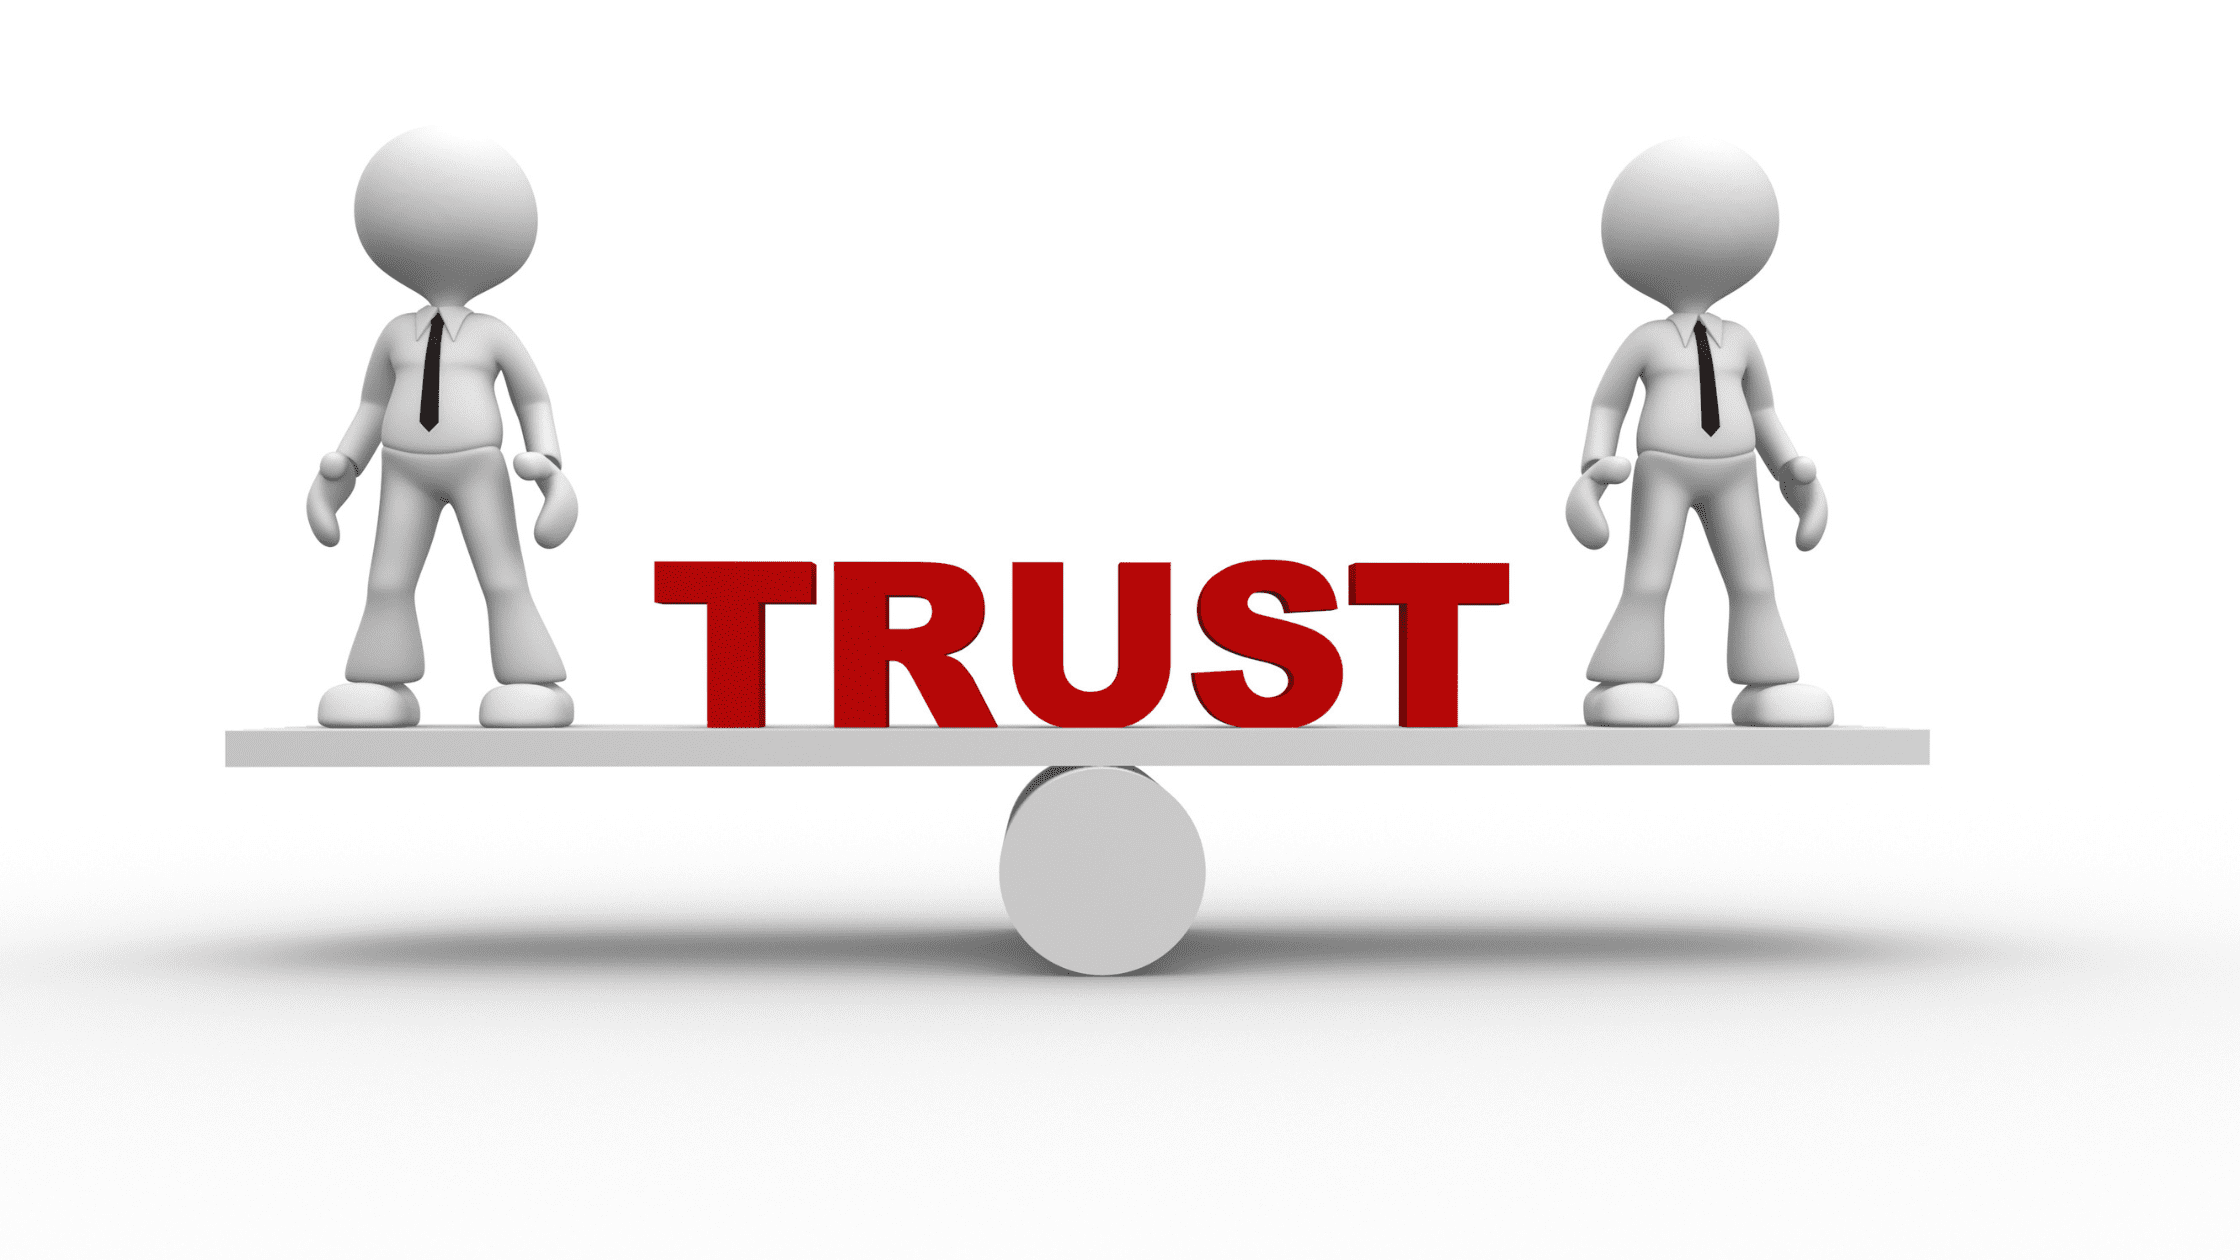 4 Things Every Leader Needs to Know About Trust